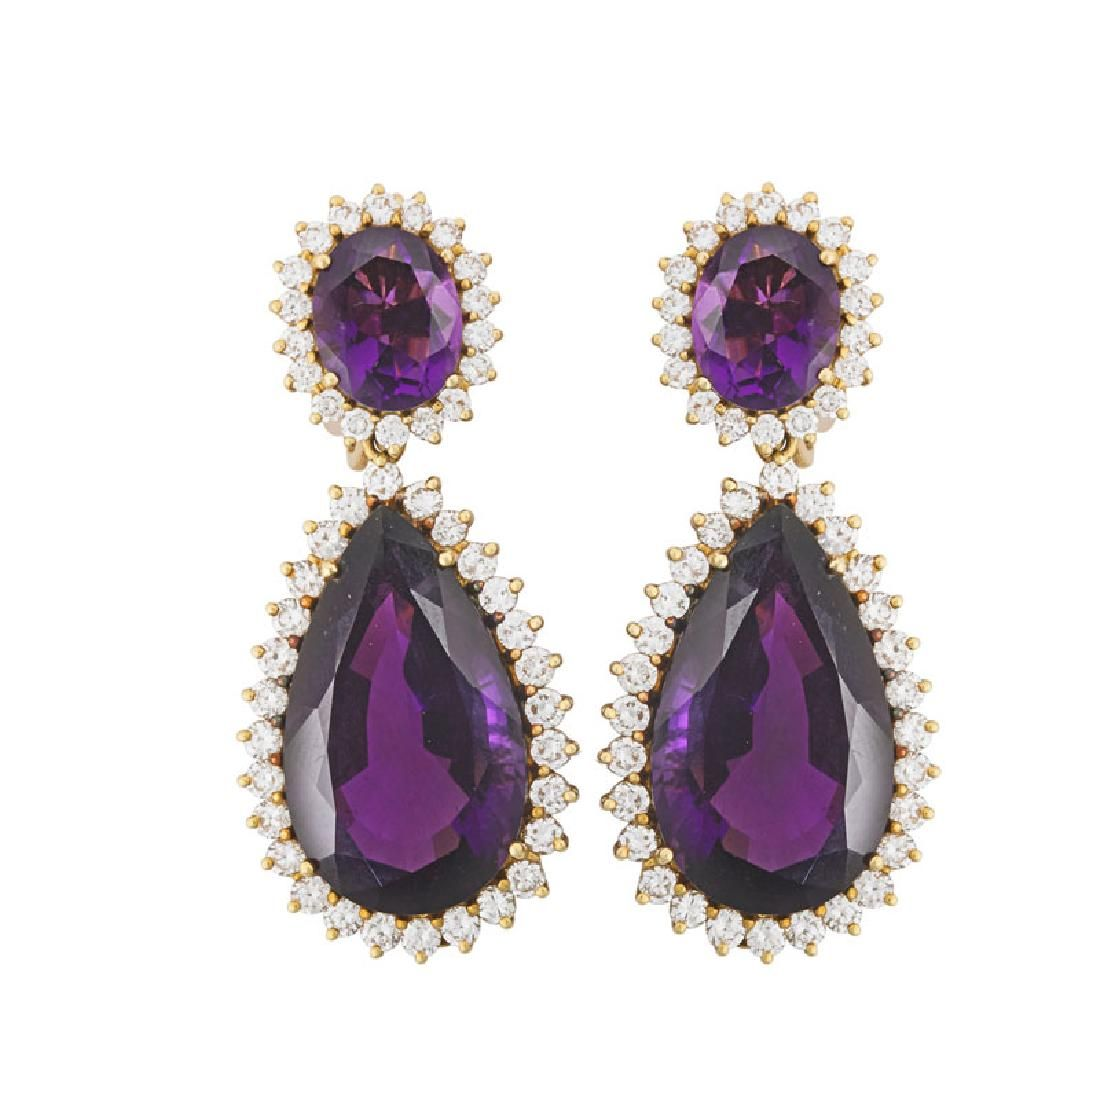 AMETHYST, DIAMOND YELLOW GOLD SUBSTANTIAL DROP EARRINGS